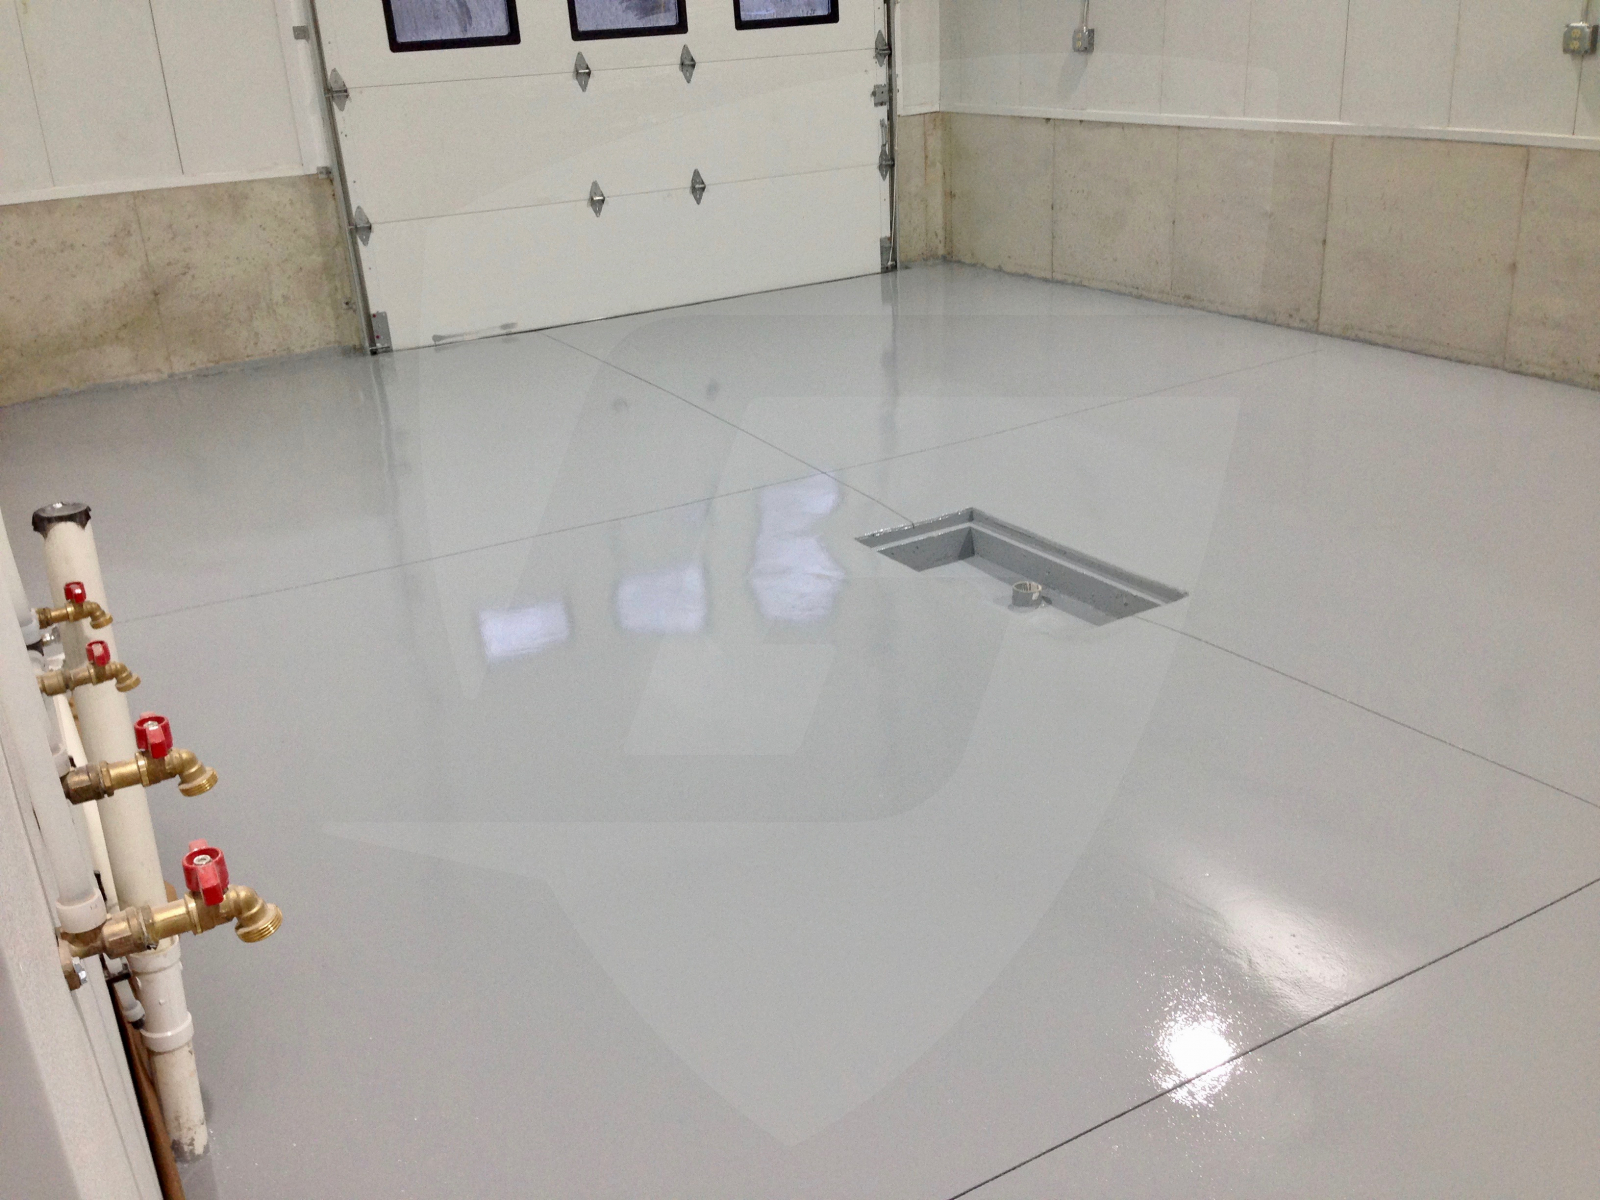 Garage Epoxy Cure Time How To Apply An Epoxy Or Urethane Sealer Ghostshield